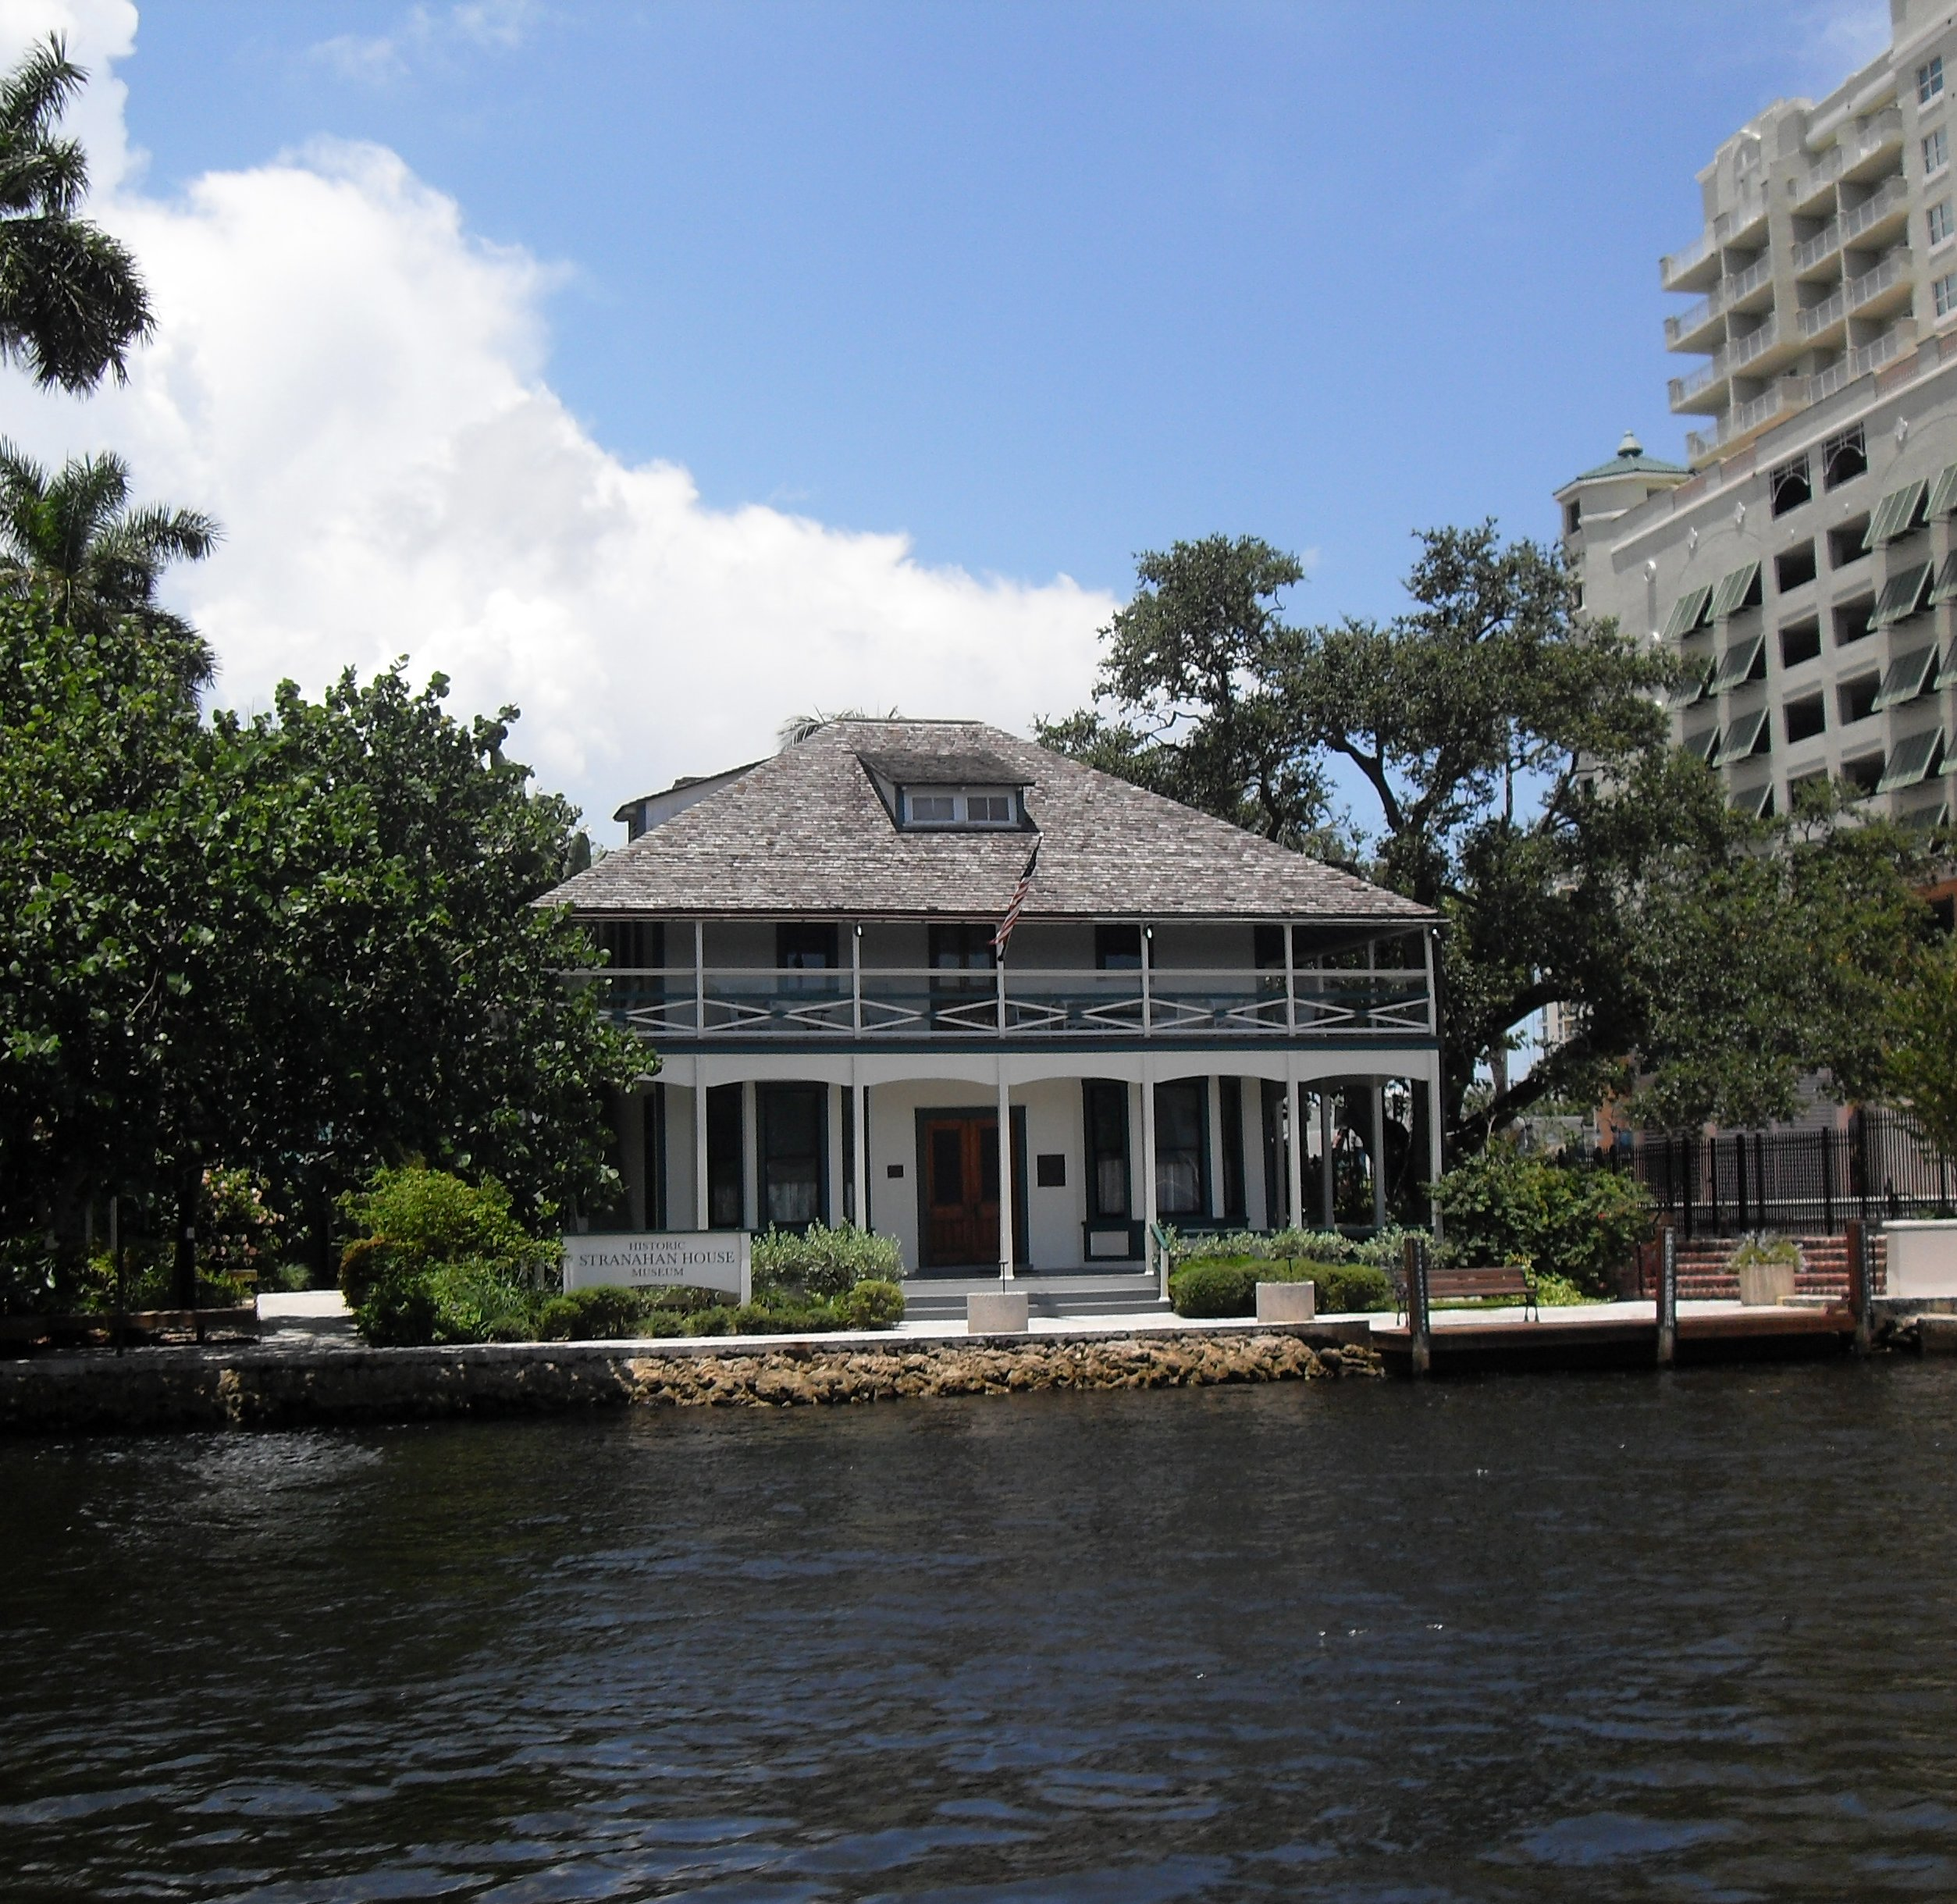 Ft Lauerdale Homes Used In The Show Burn Notice